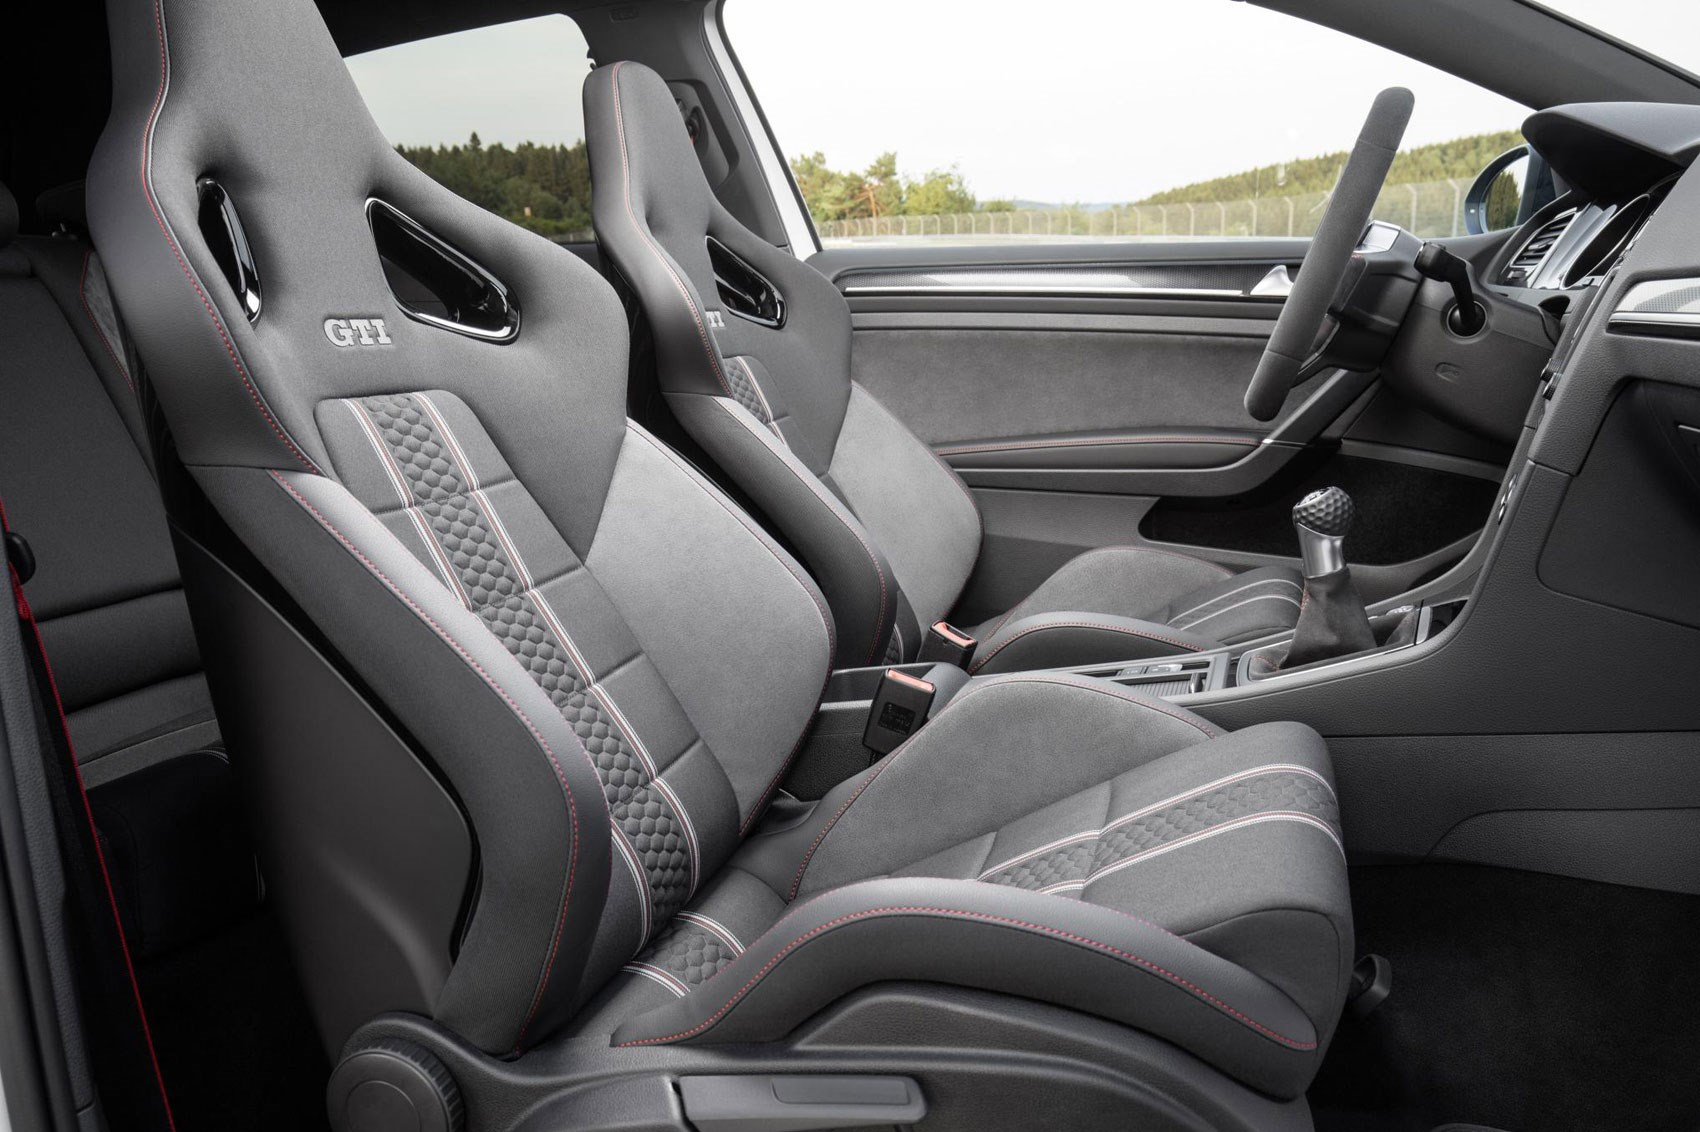 2016 Volkswagen Golf Gti Clubsport Front Seats Interior (Photo 8 of 10)